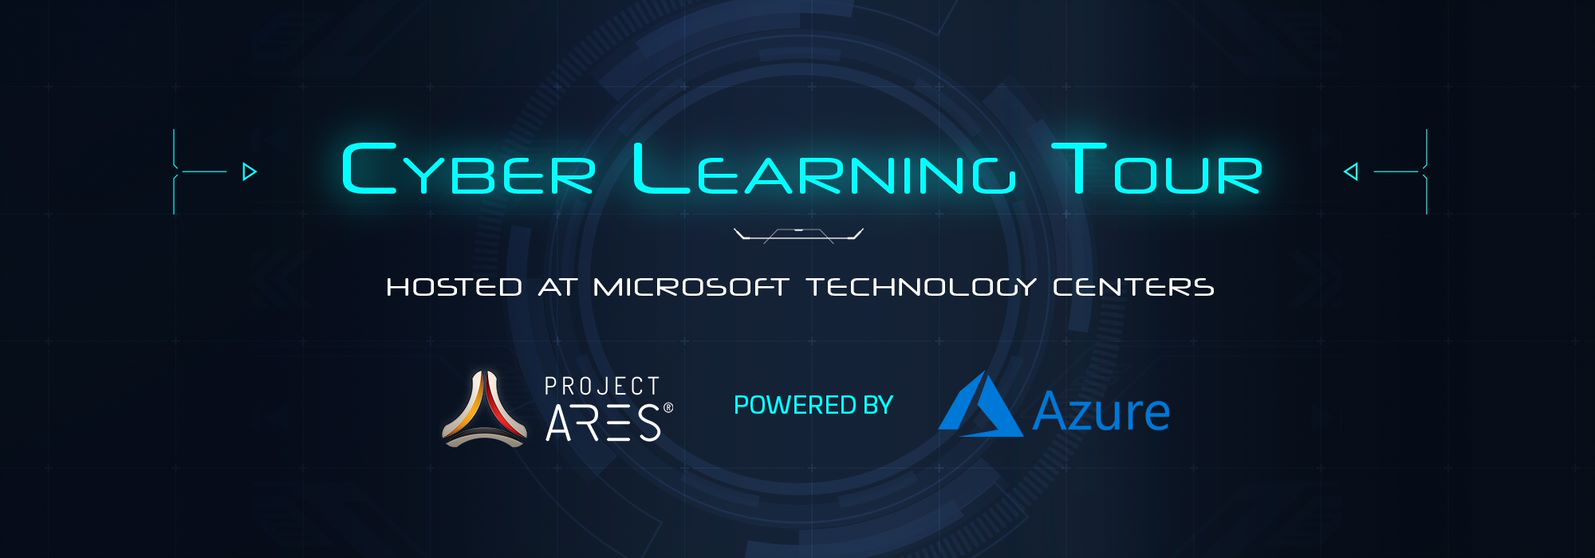 cyber-learning-tour-banner